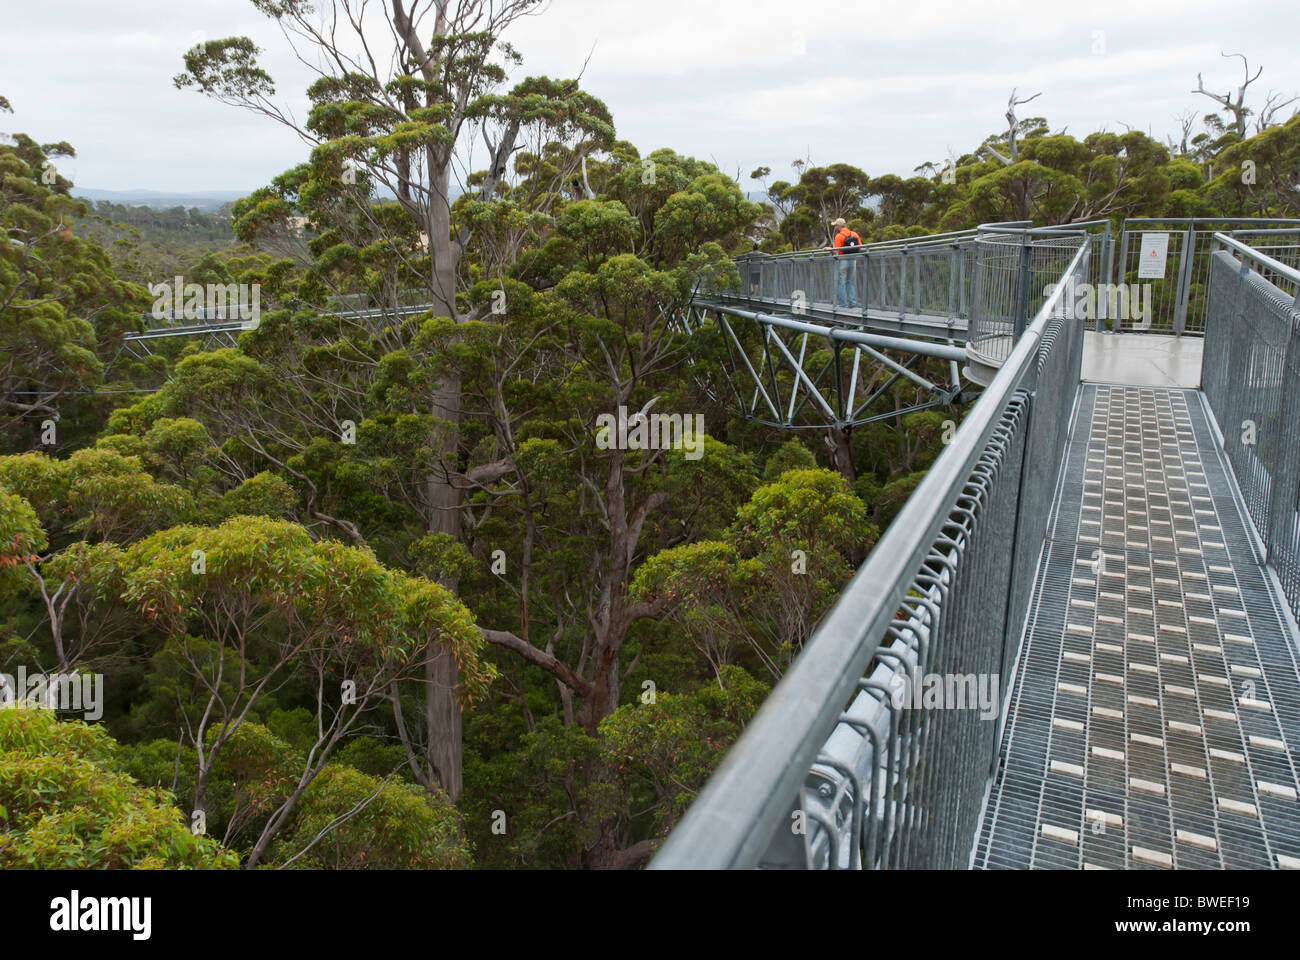 The Valley of the Giants Tree Top Walk  near Nornalup on the south coast of Western Australia. - Stock Image